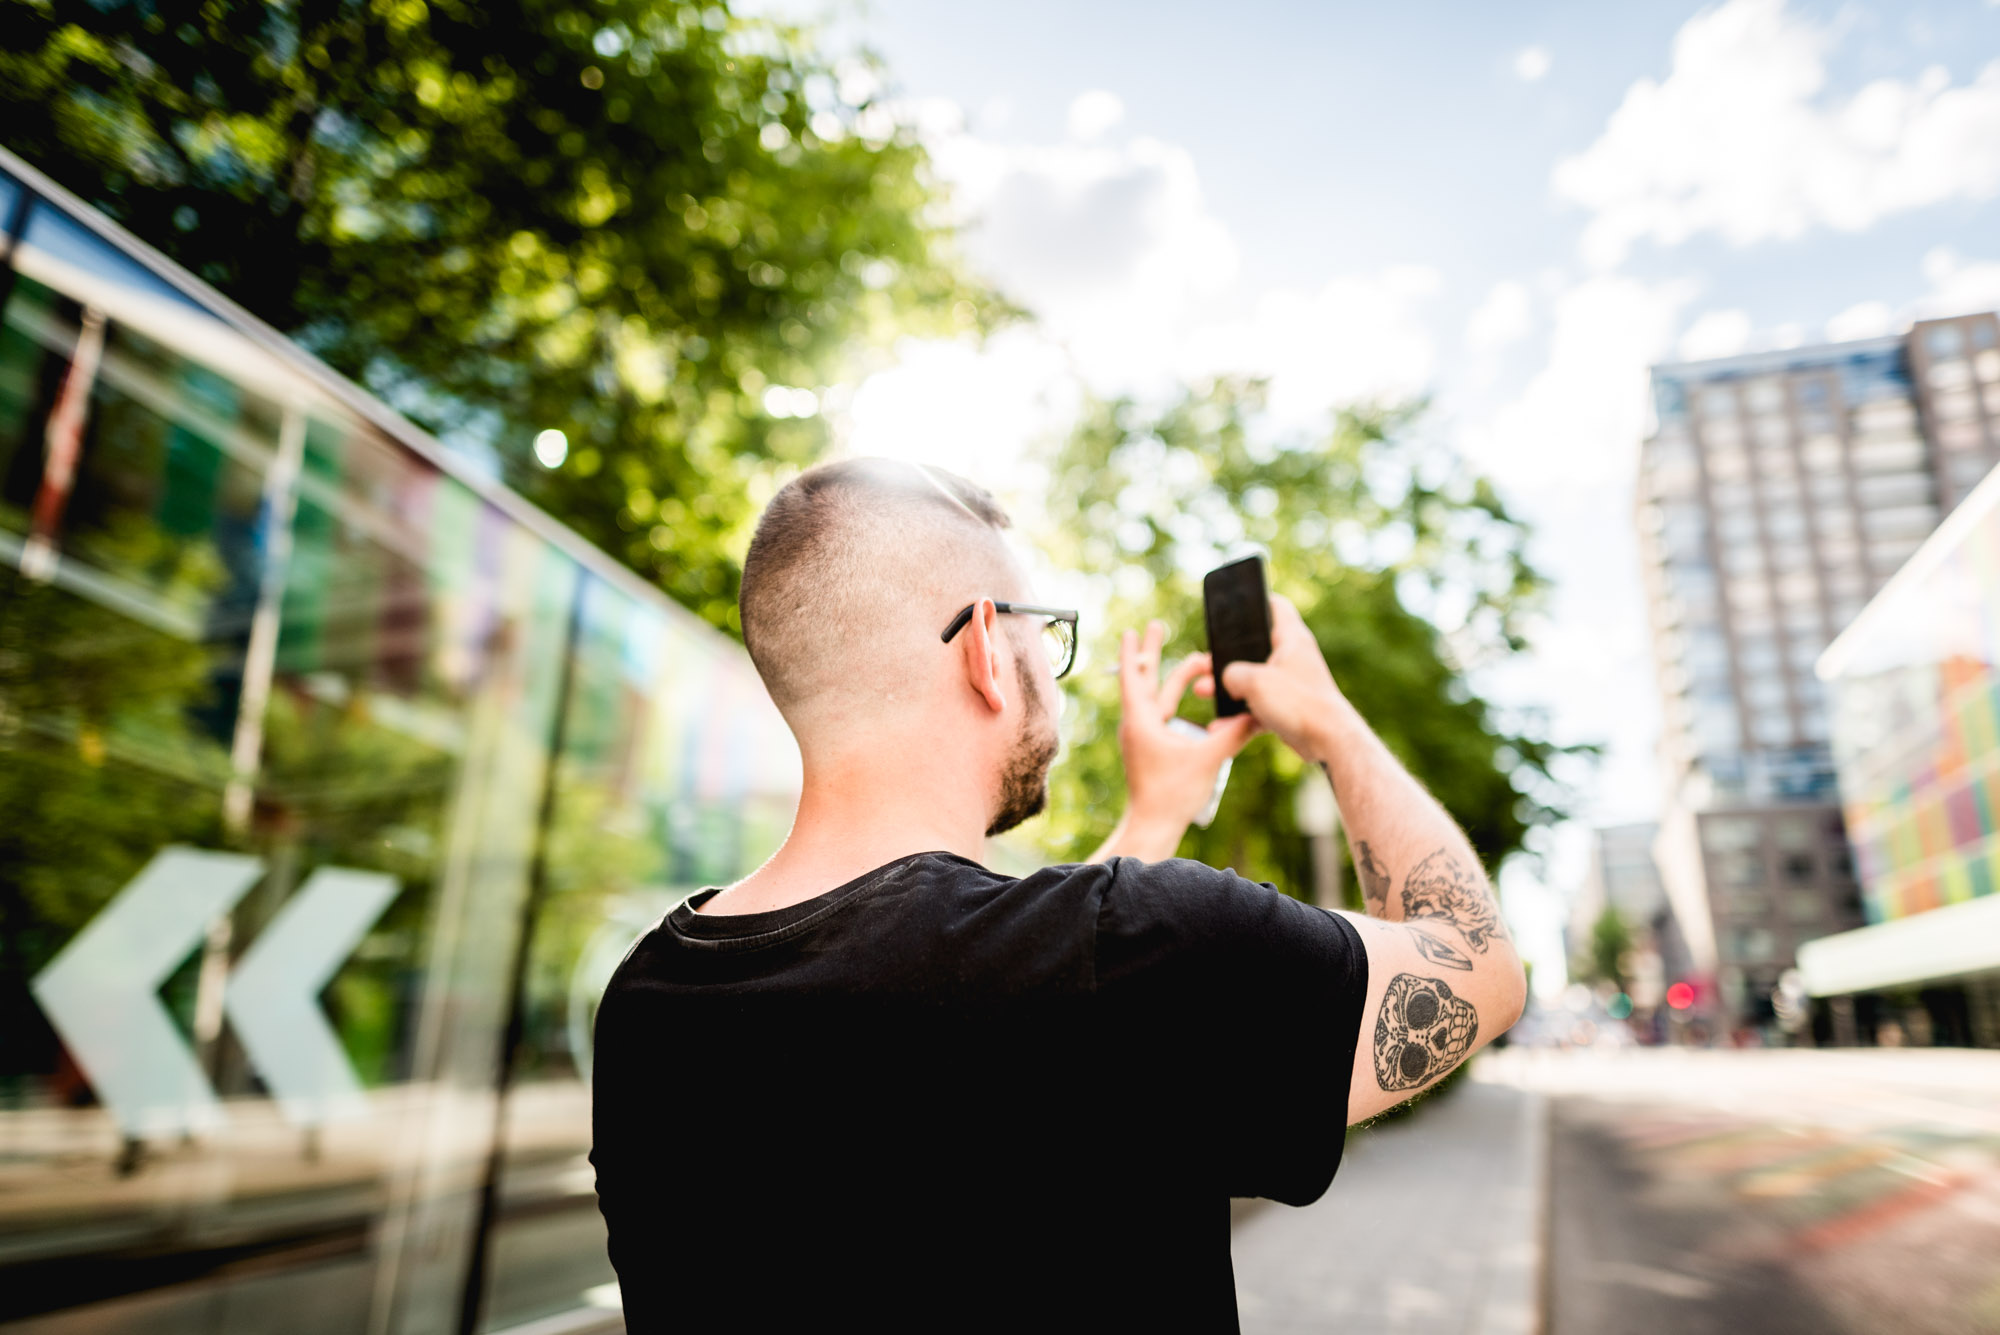 Jeff On The Road - How To Find An Apartment in Montreal - Men using smartphone in Montreal - All photos are under Copyright © 2017 Jeff Frenette Photography / dezjeff. To use the photos, please contact me at dezjeff@me.com.